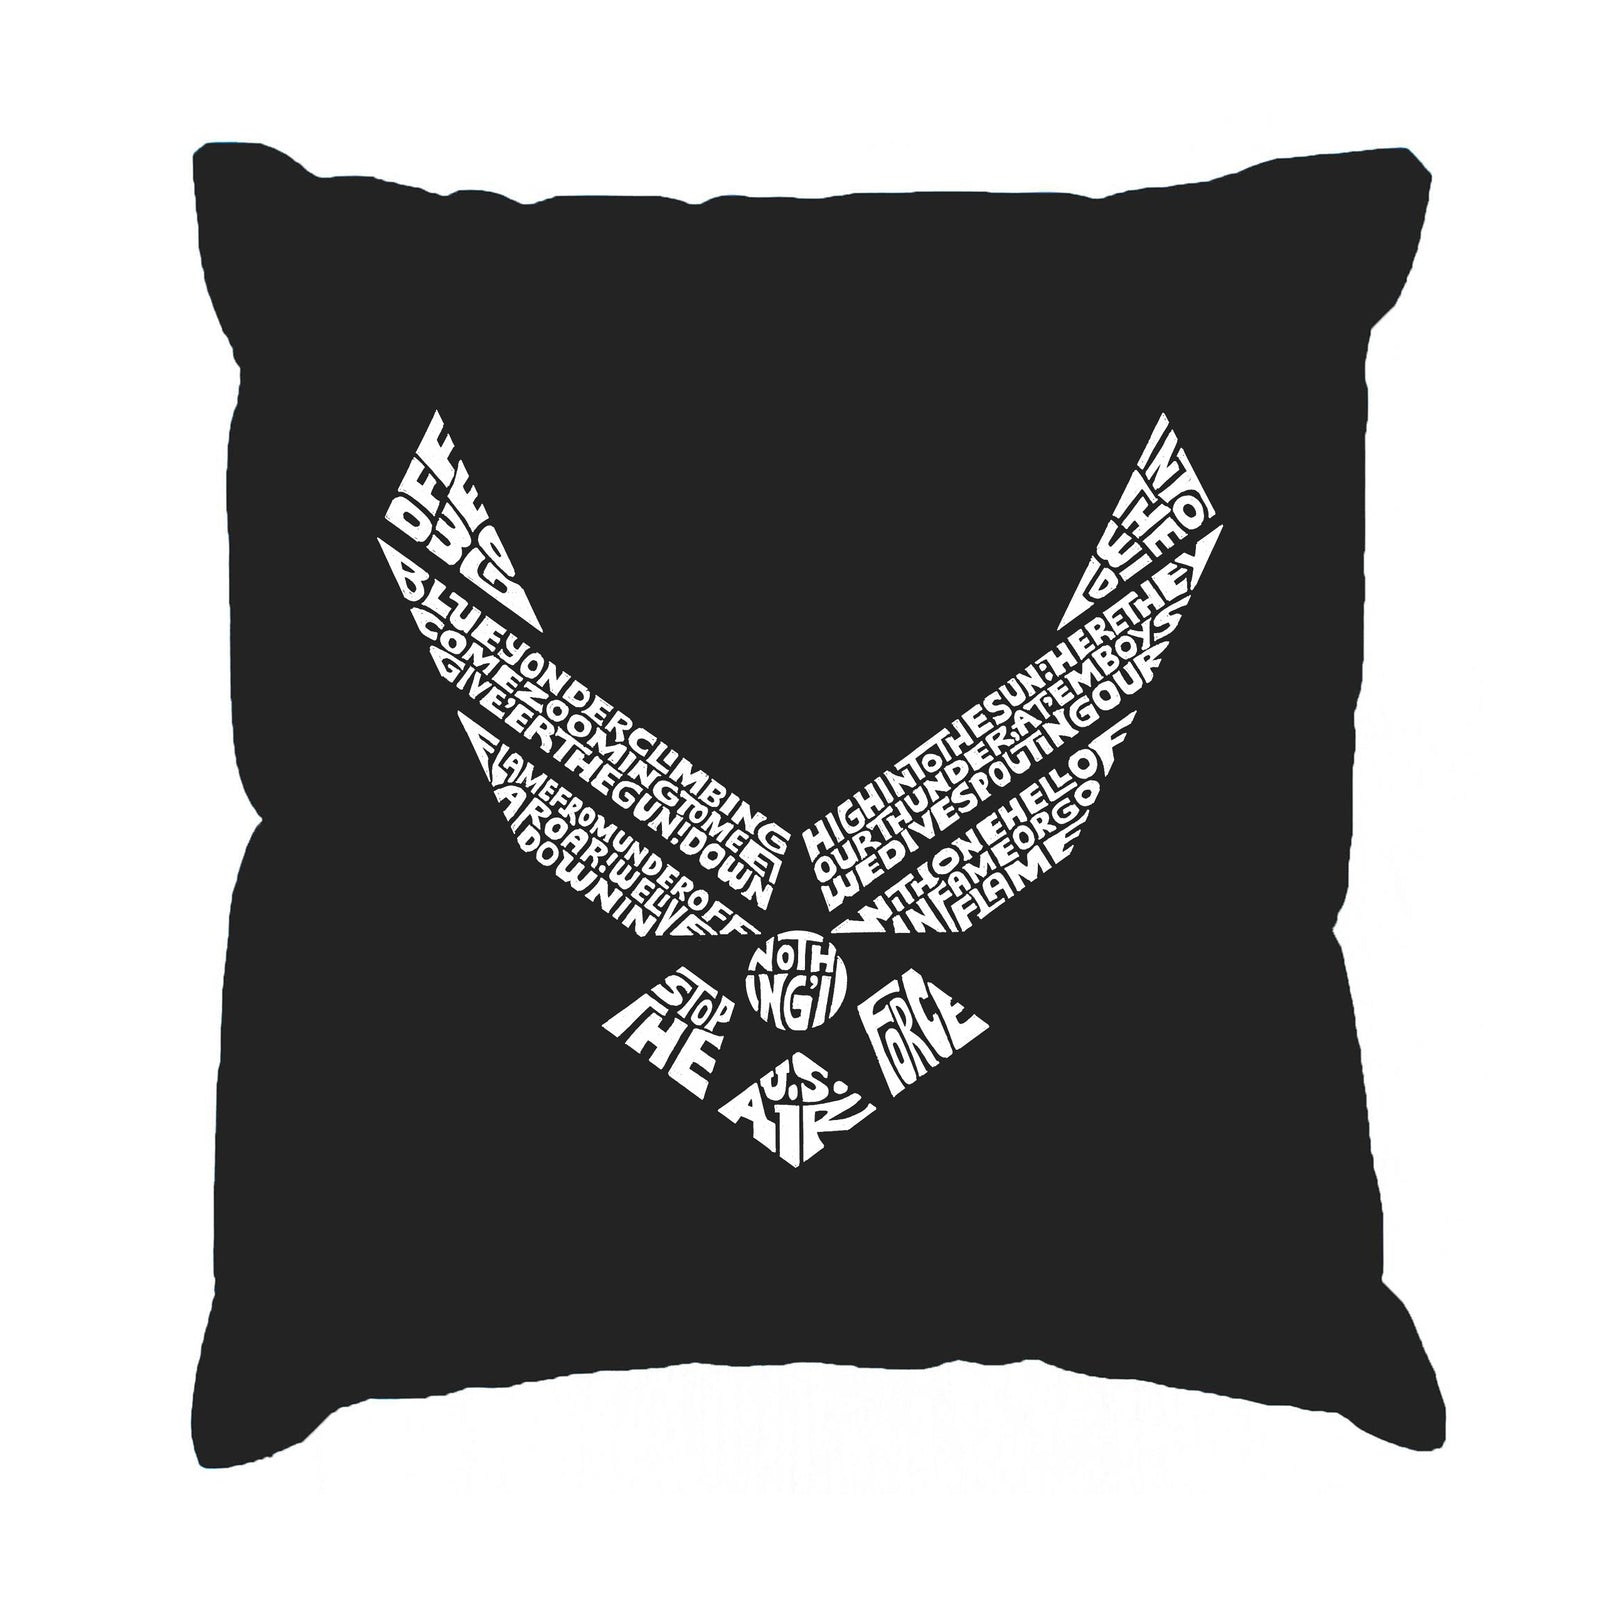 Throw Pillow Cover - LYRICS TO THE AIR FORCE SONG